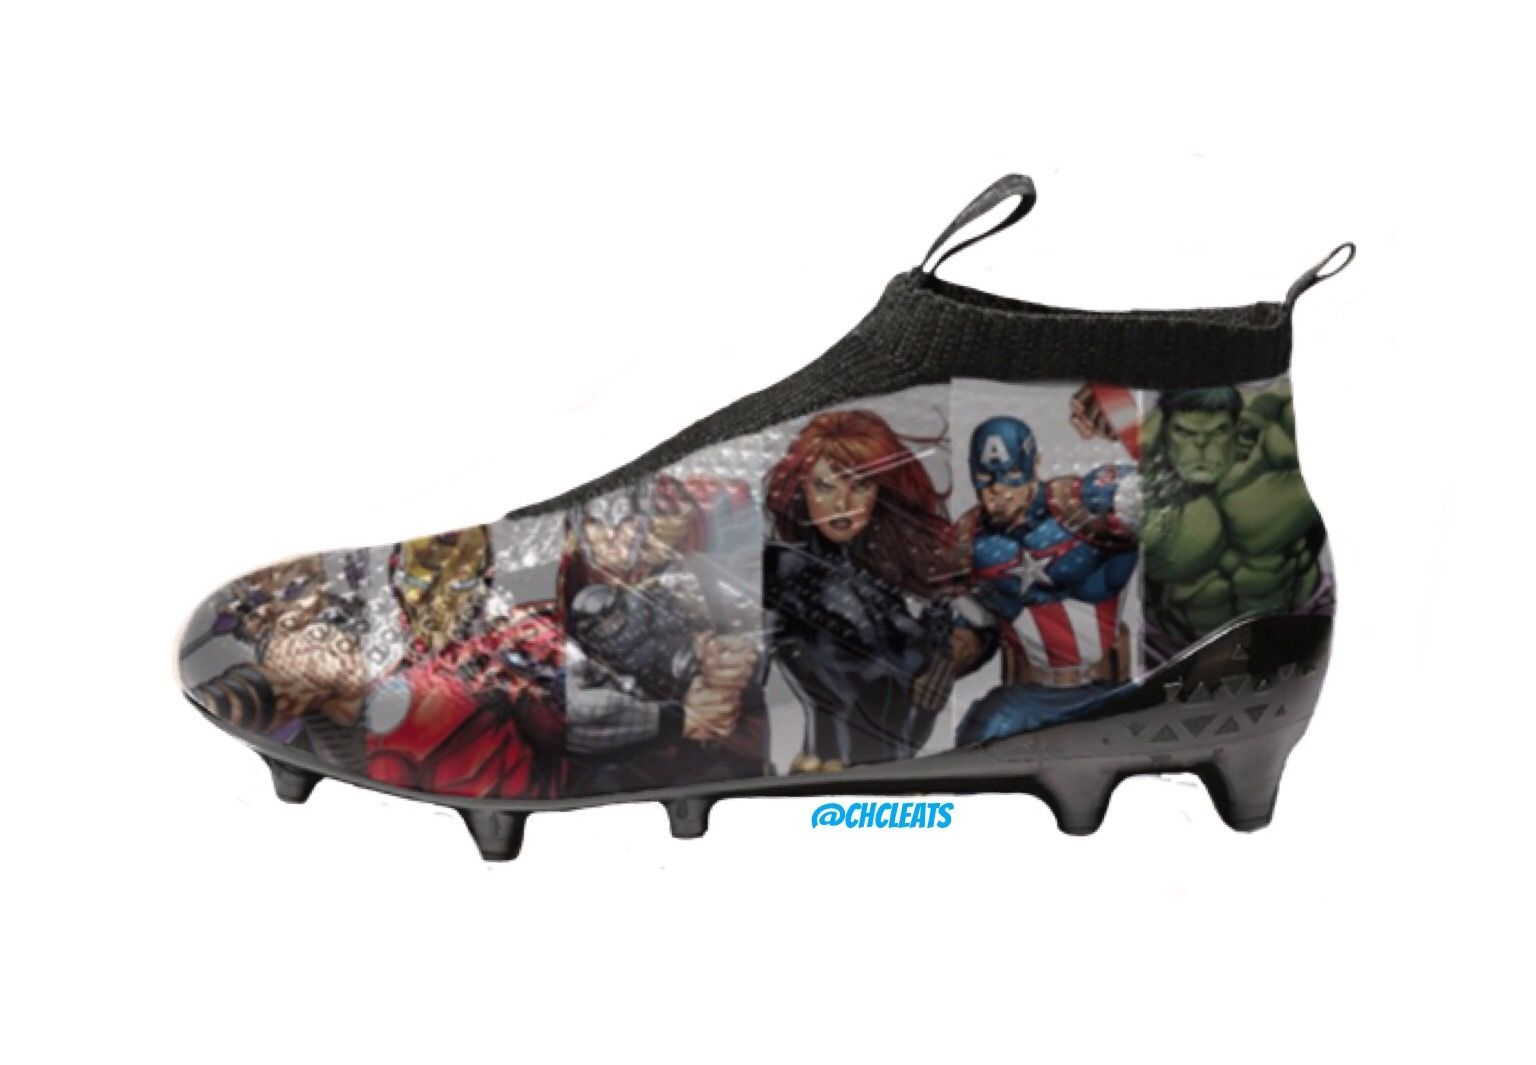 ebbf59a9bdf Adidas Avengers Cleats Soccer Boots